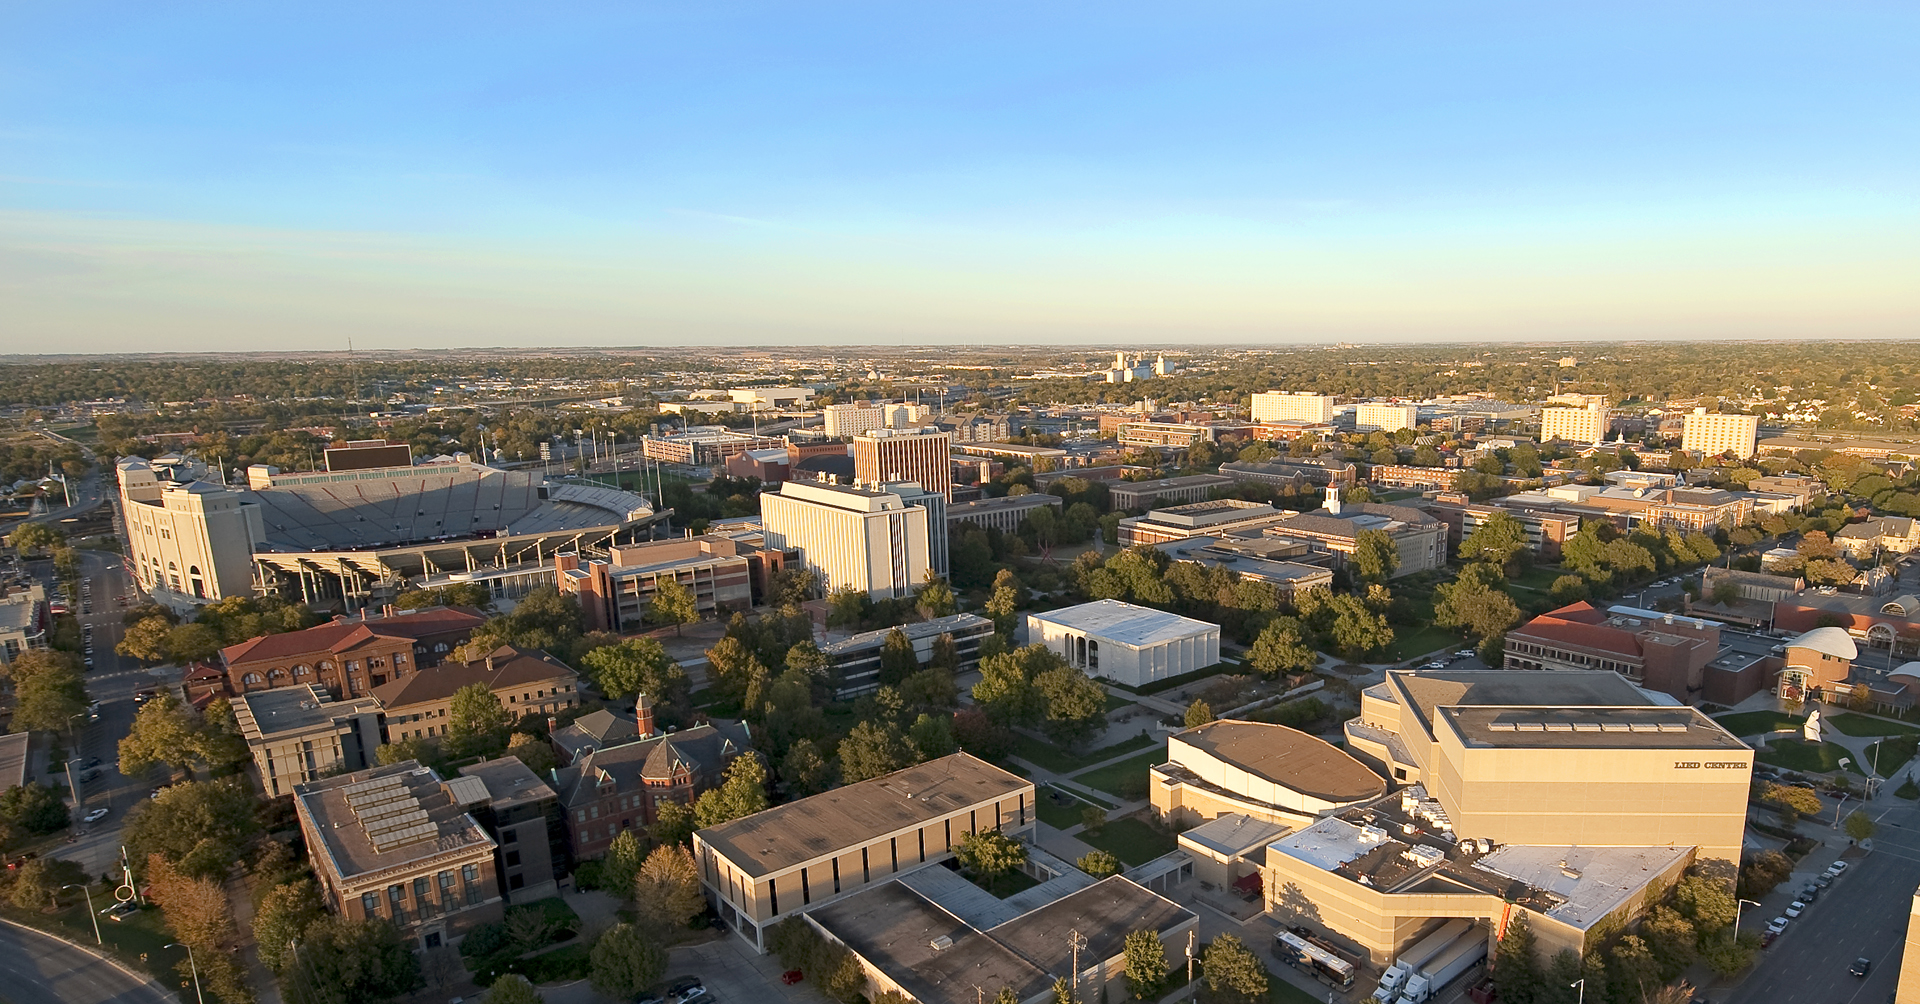 UNL Aerial Photography